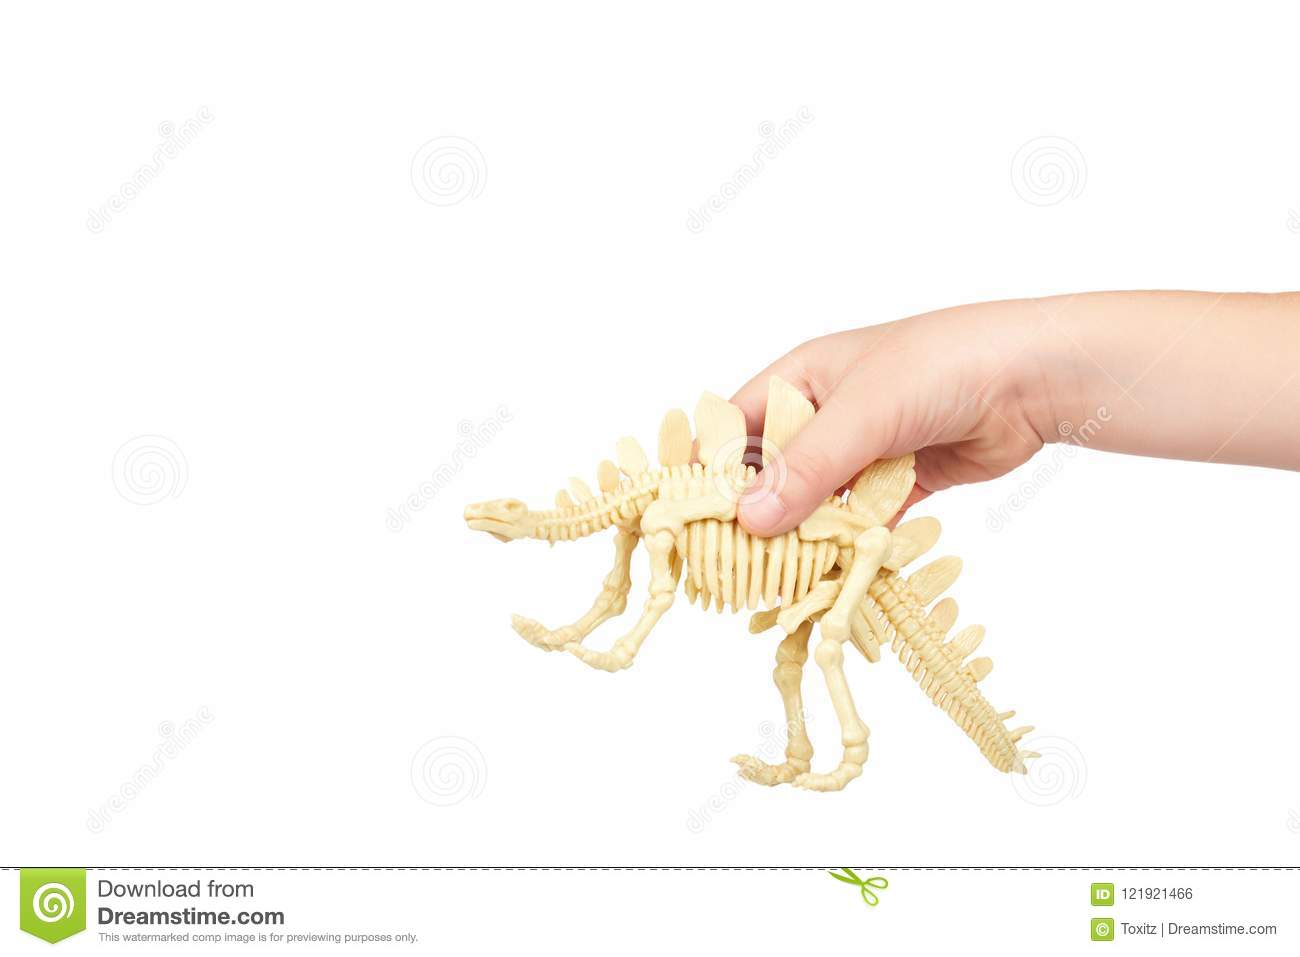 Kid Hand Hold Dinosaur Skeleton Toy Isolated On White Background Copy Space Template